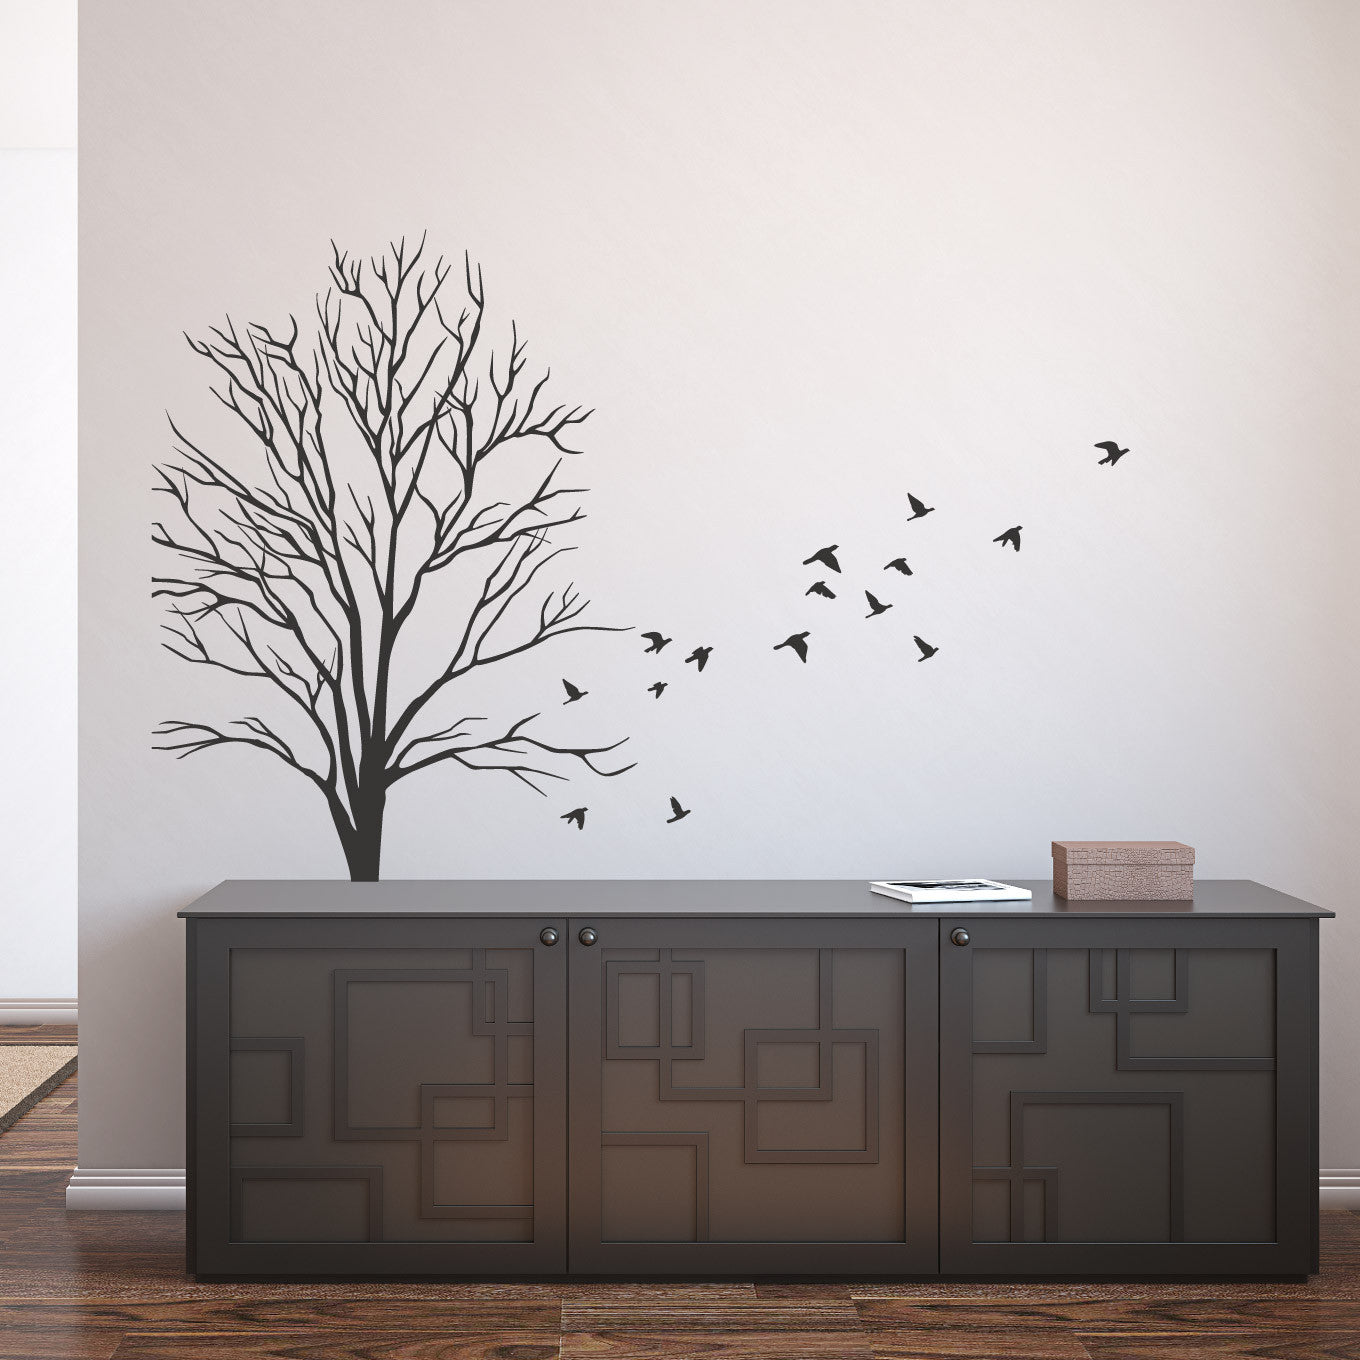 Small wall decal tree design birds wall decals australia fixate wall decal small tree design with flock of flying birds amipublicfo Image collections